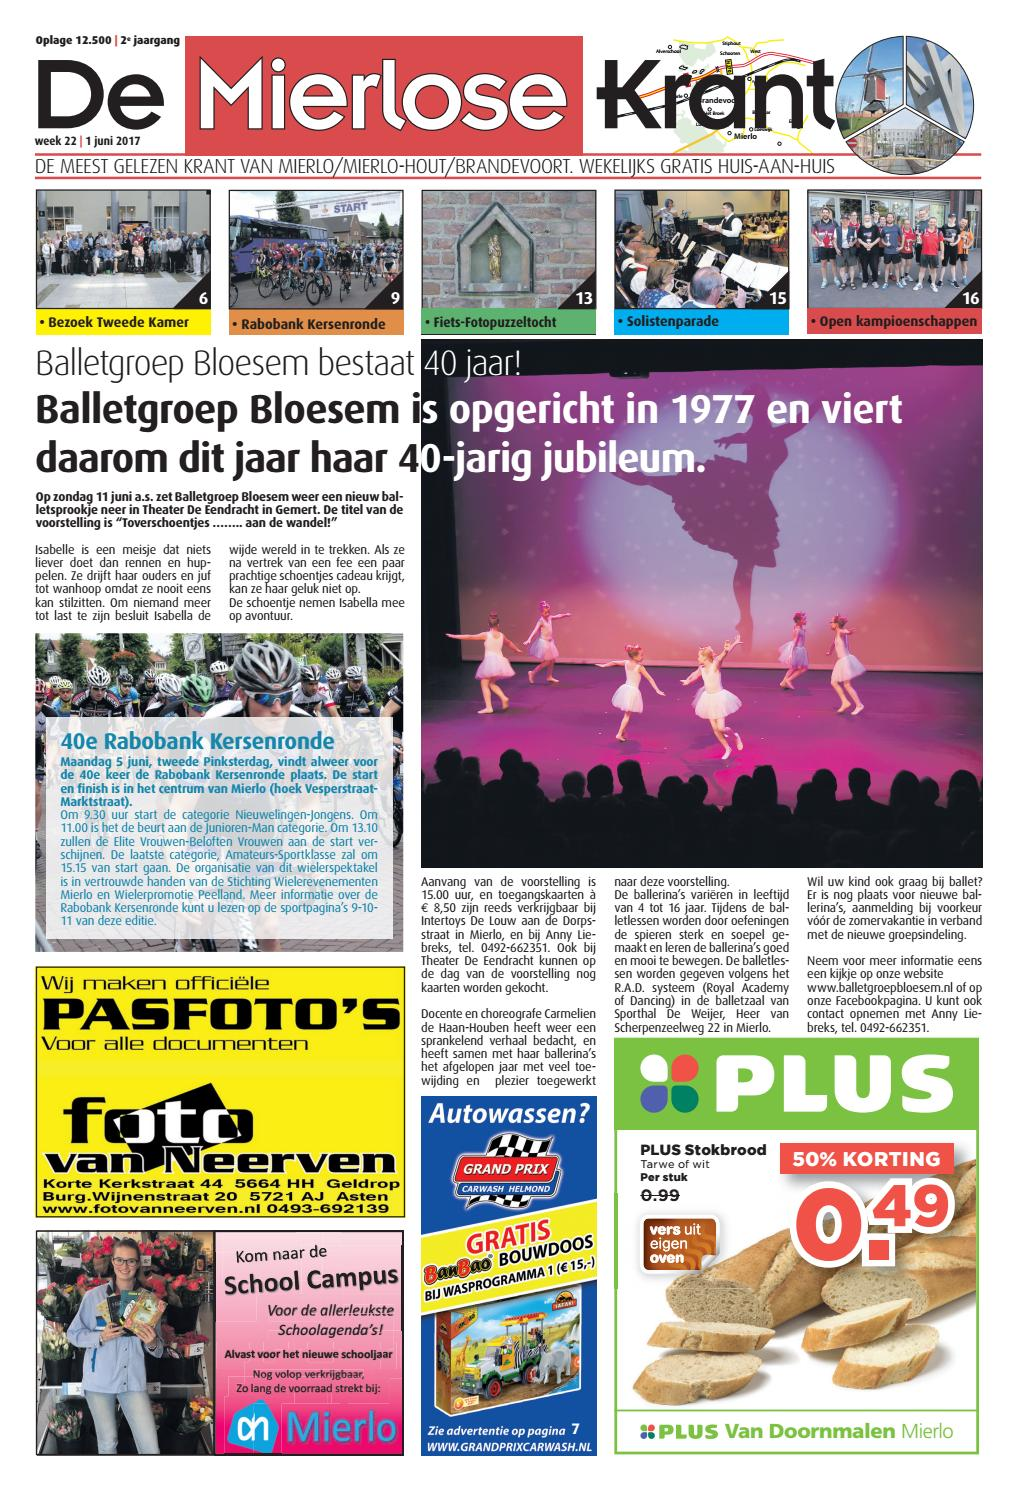 eb7be087407fd9 Mierlosekrant wk22 by ruudd reclamerespons.nl - issuu